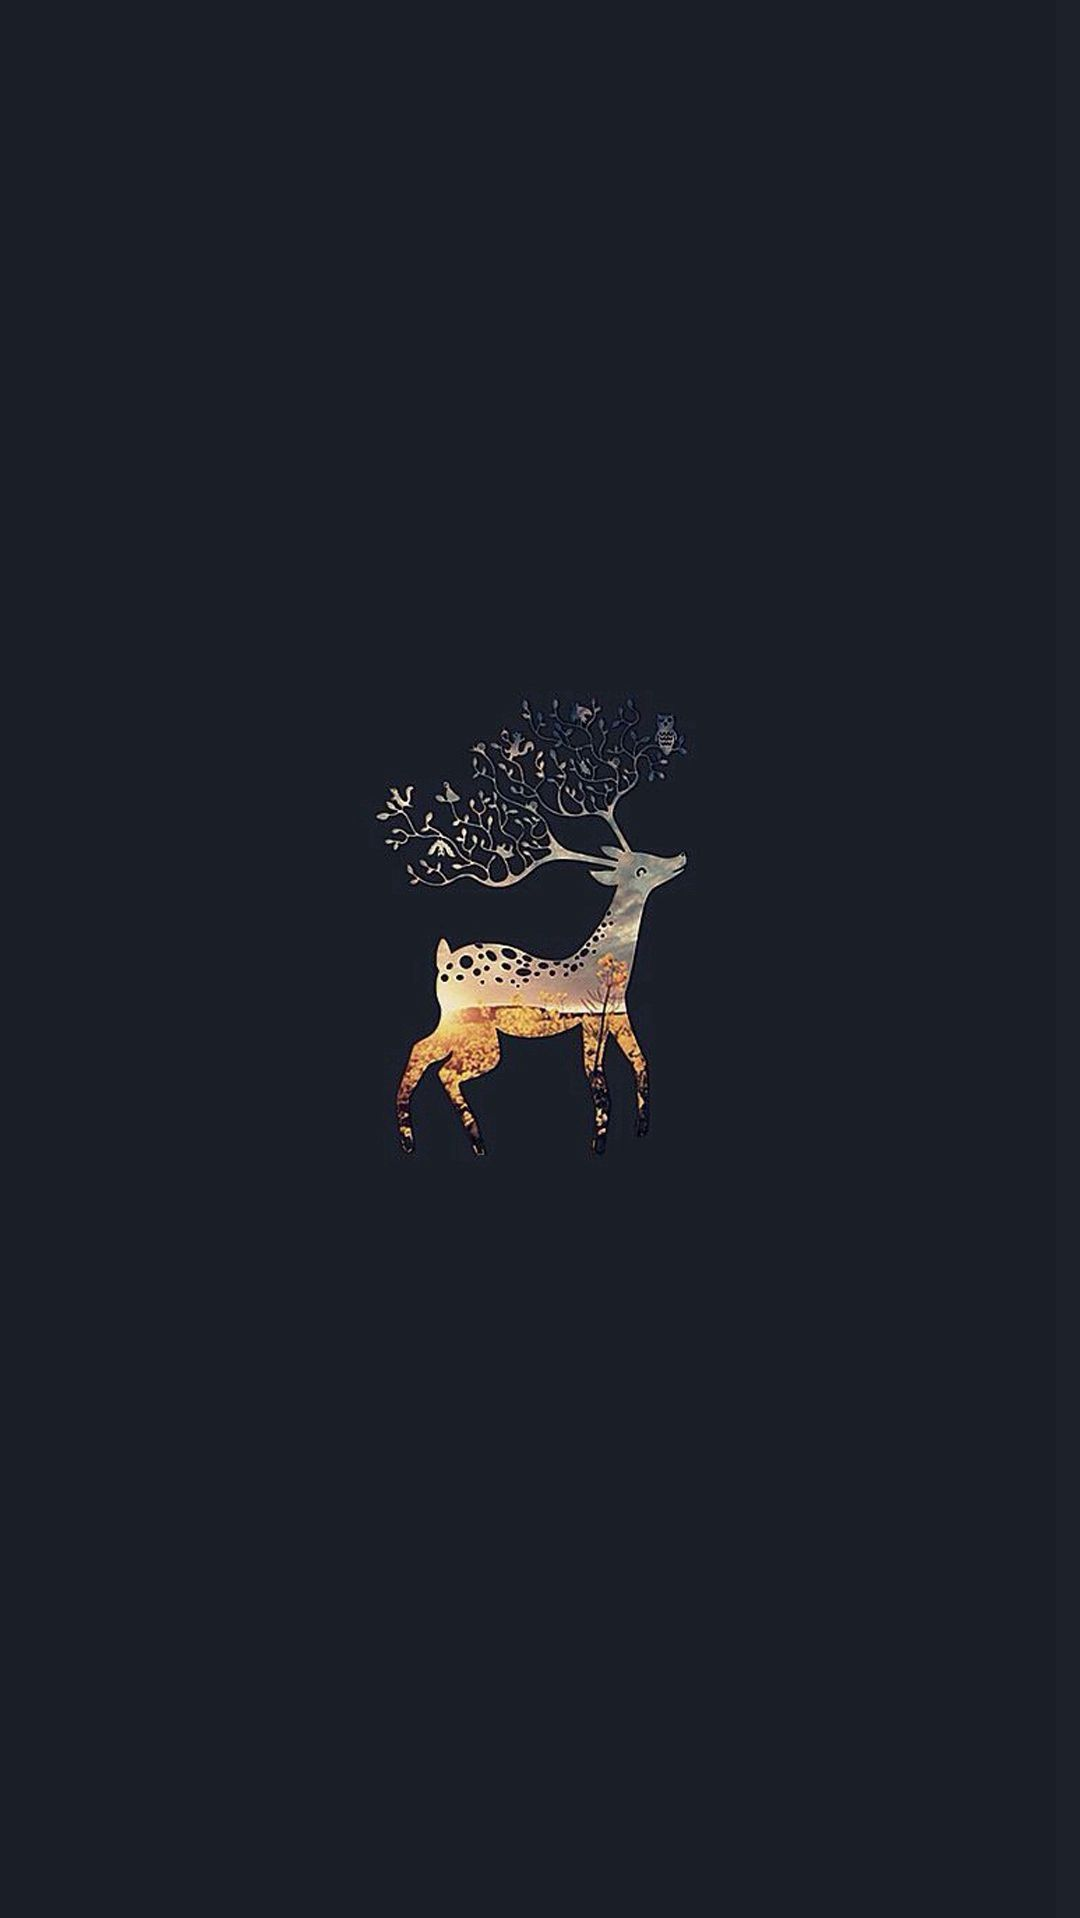 Pin By Monica On Iphone And Ipad Wallpapers And Tips Cute Black Wallpaper Iphone 6 Wallpaper Deer Wallpaper